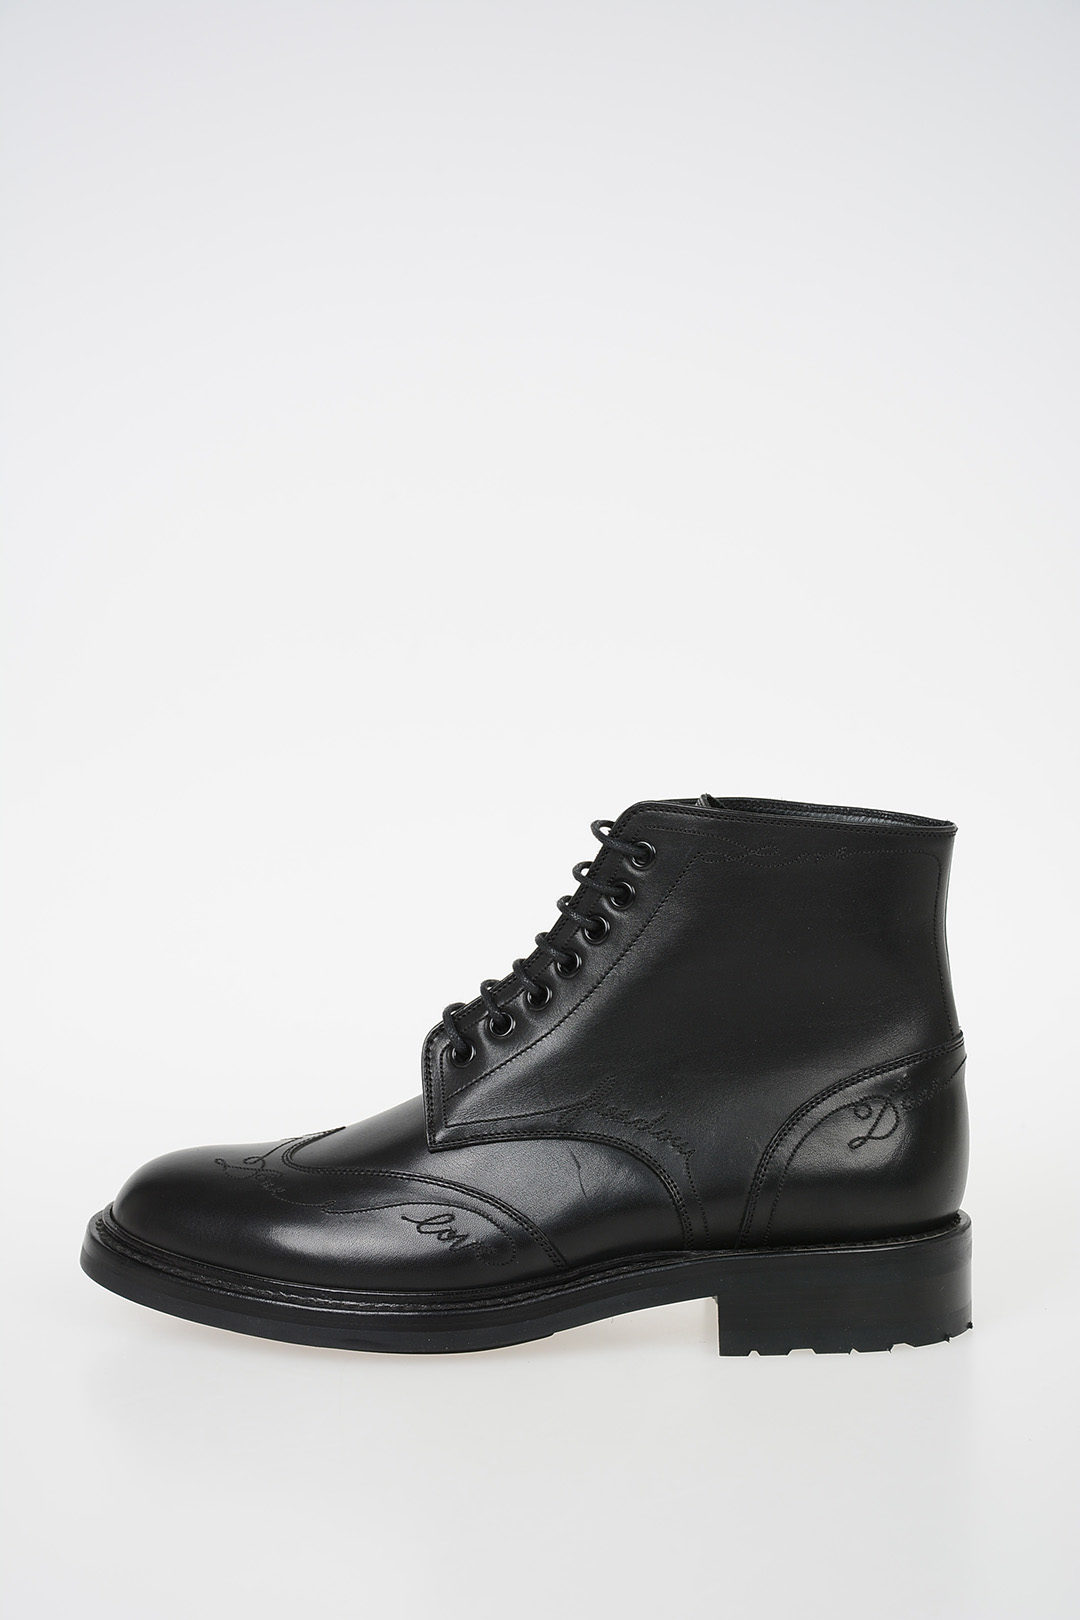 c1fab112b97 Saint Laurent Leather WILLIAM Lace Up Booties women - Glamood Outlet